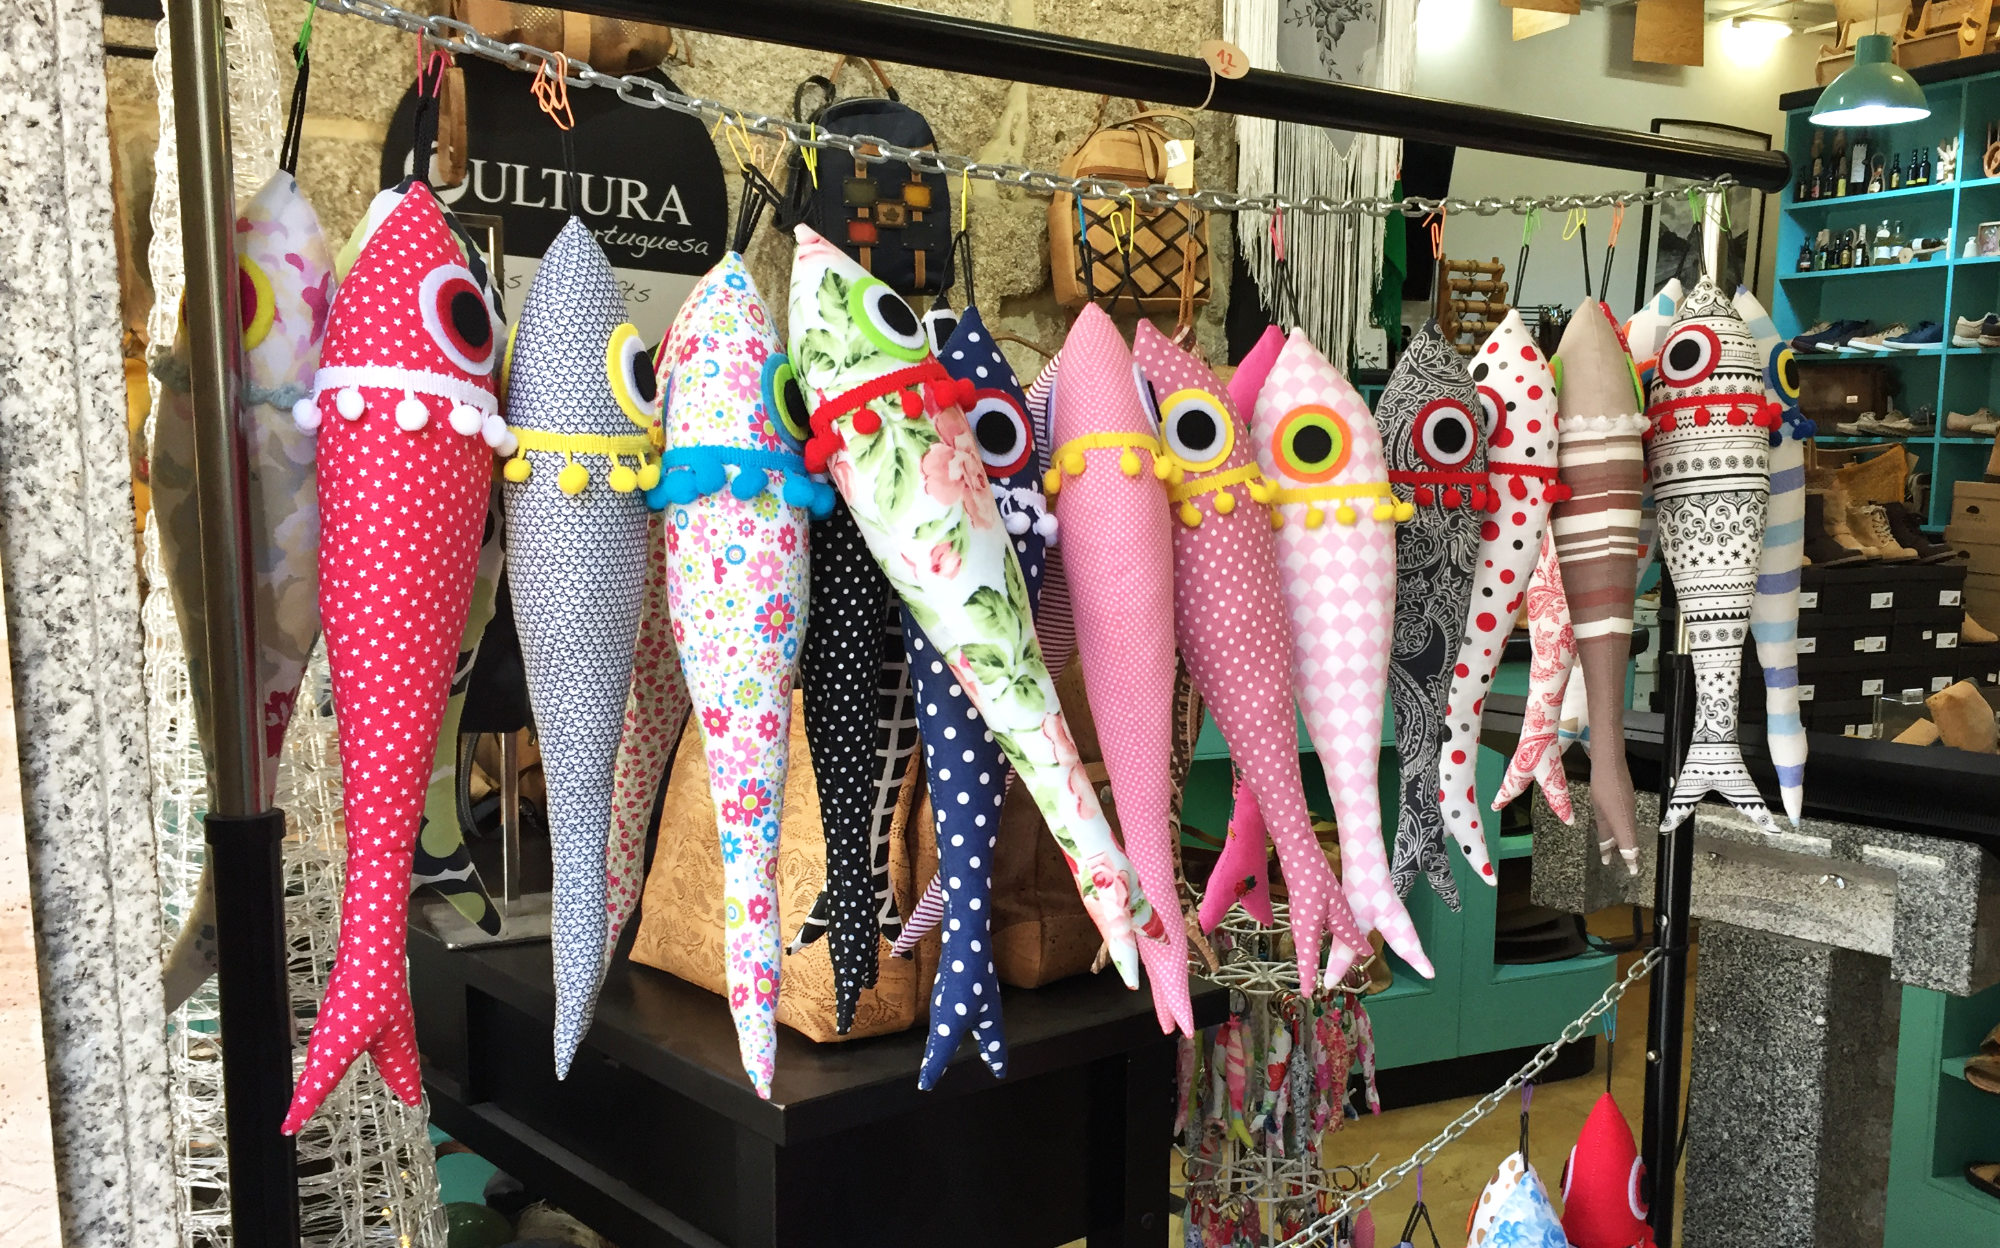 Decorative sardines made out of cloth